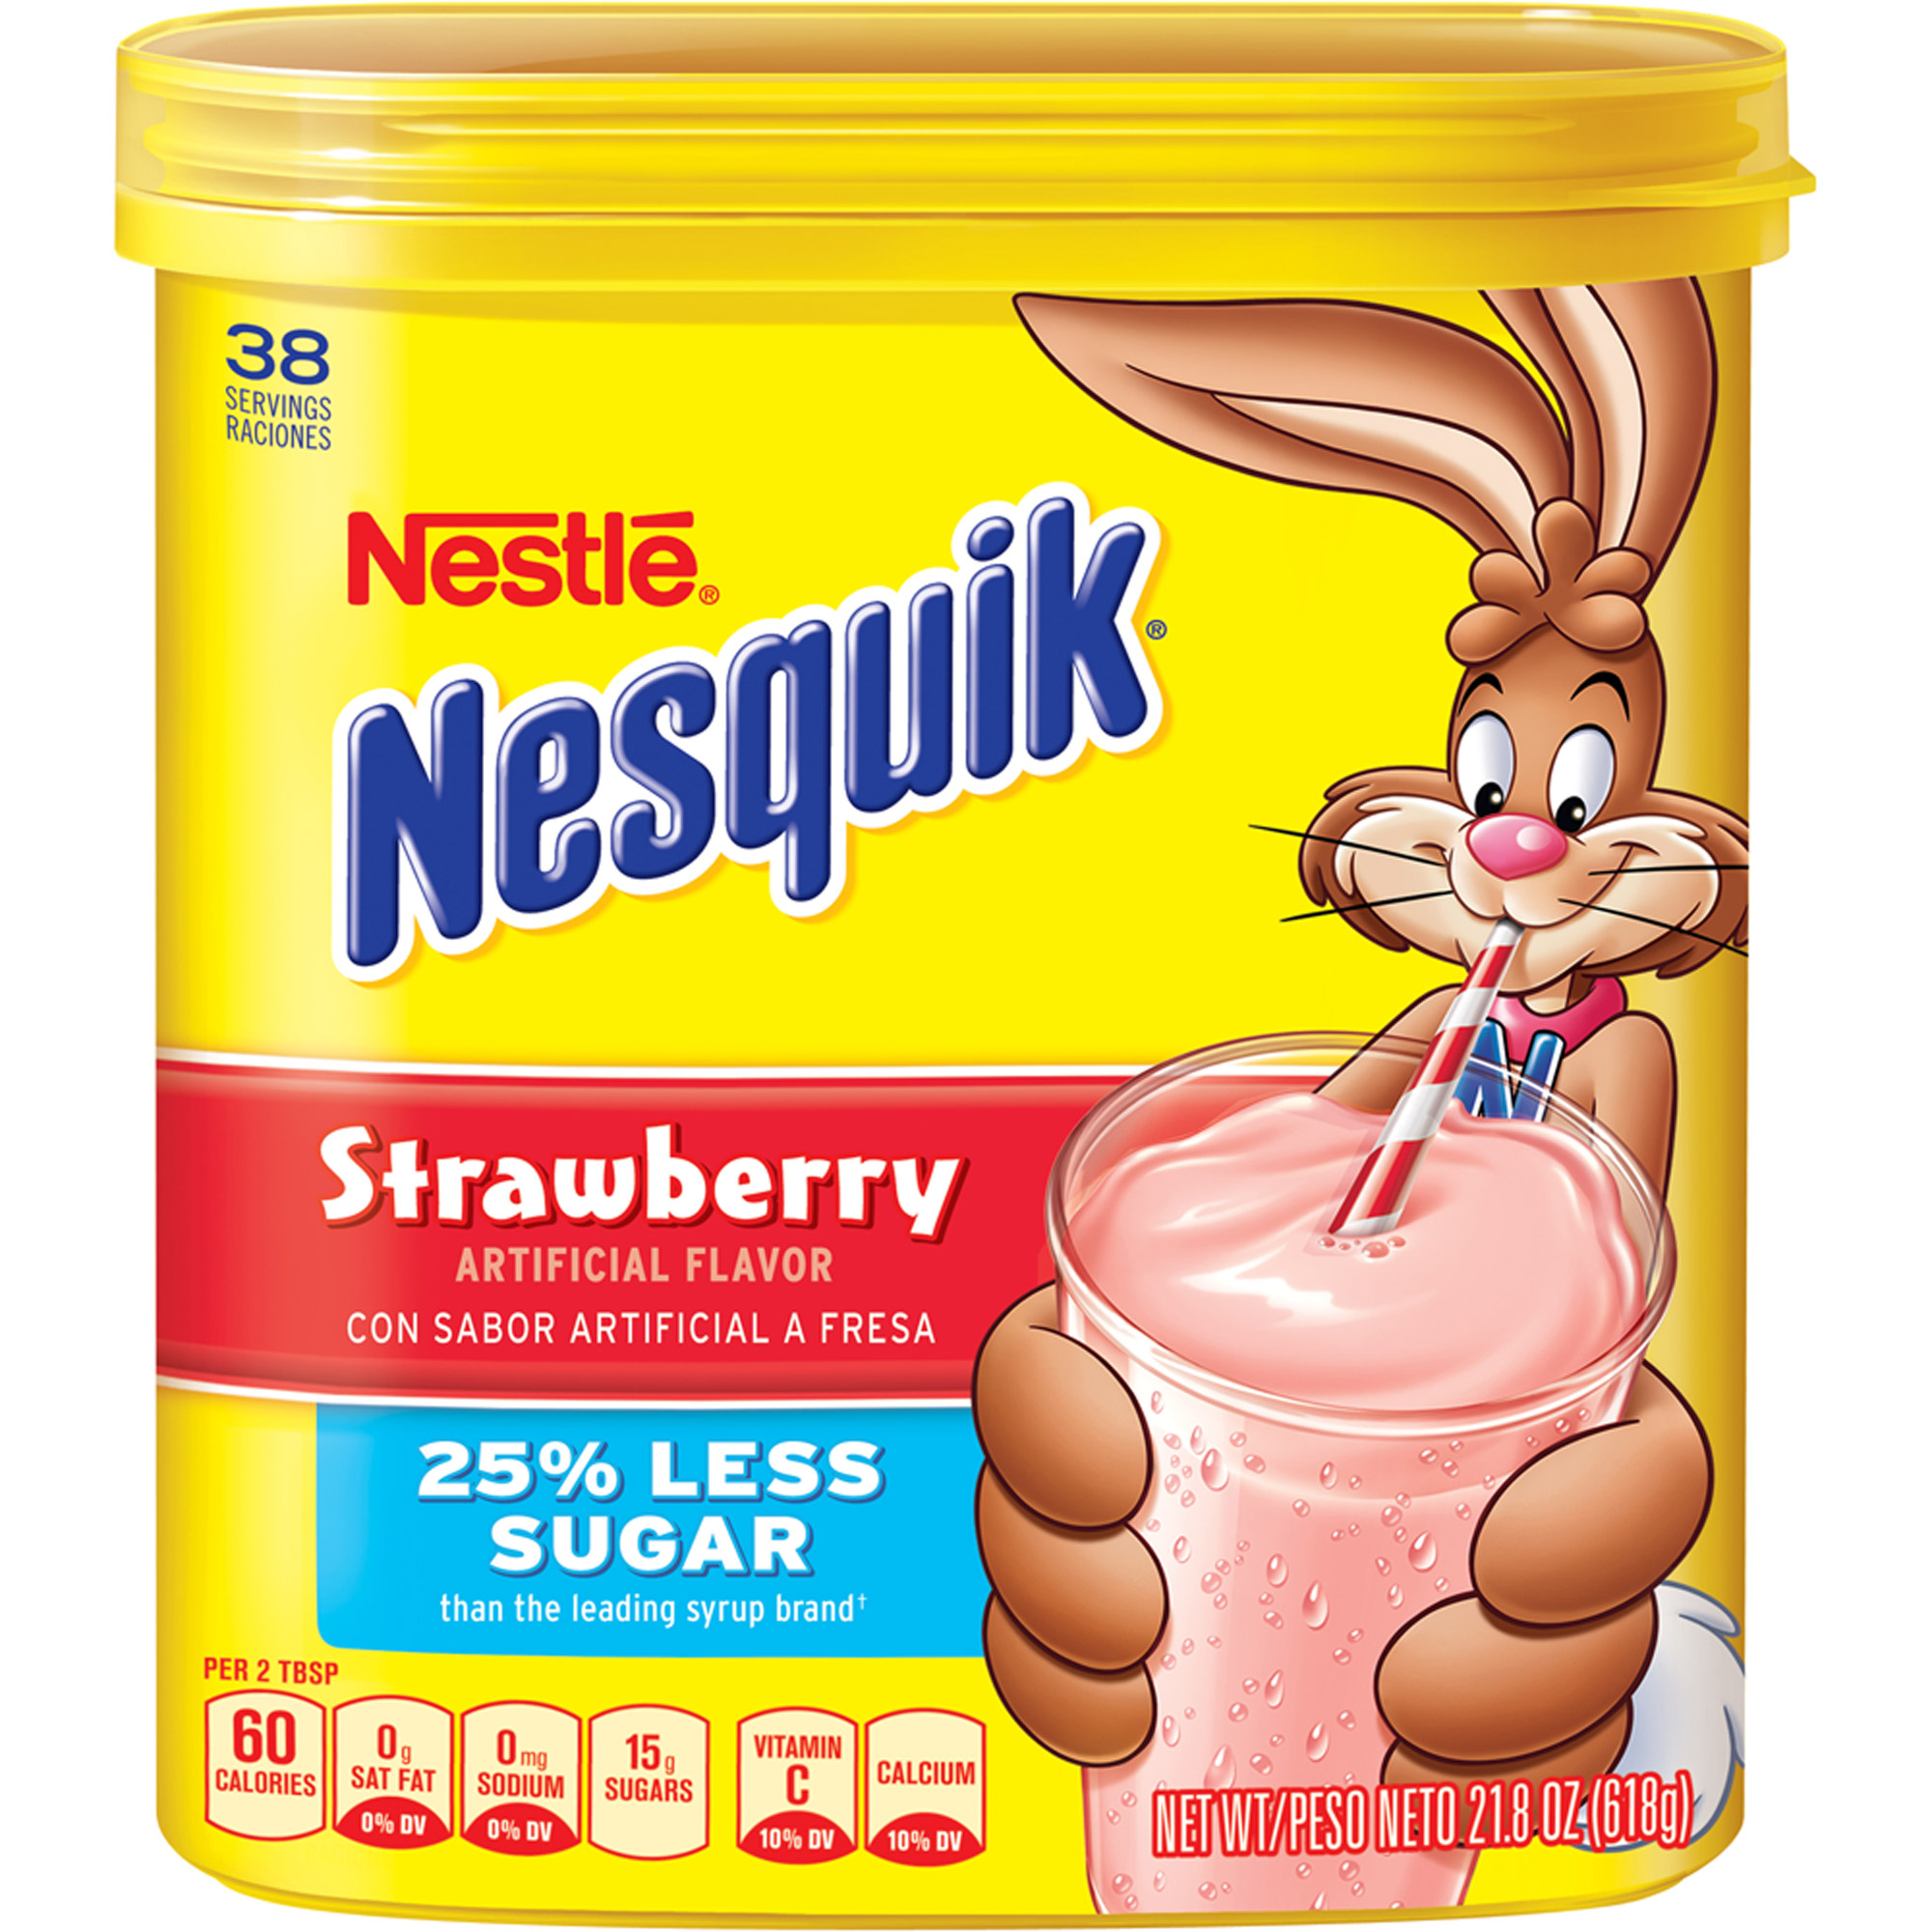 Nestle Nesquik Strawberry Flavored Powder, 21.8 oz